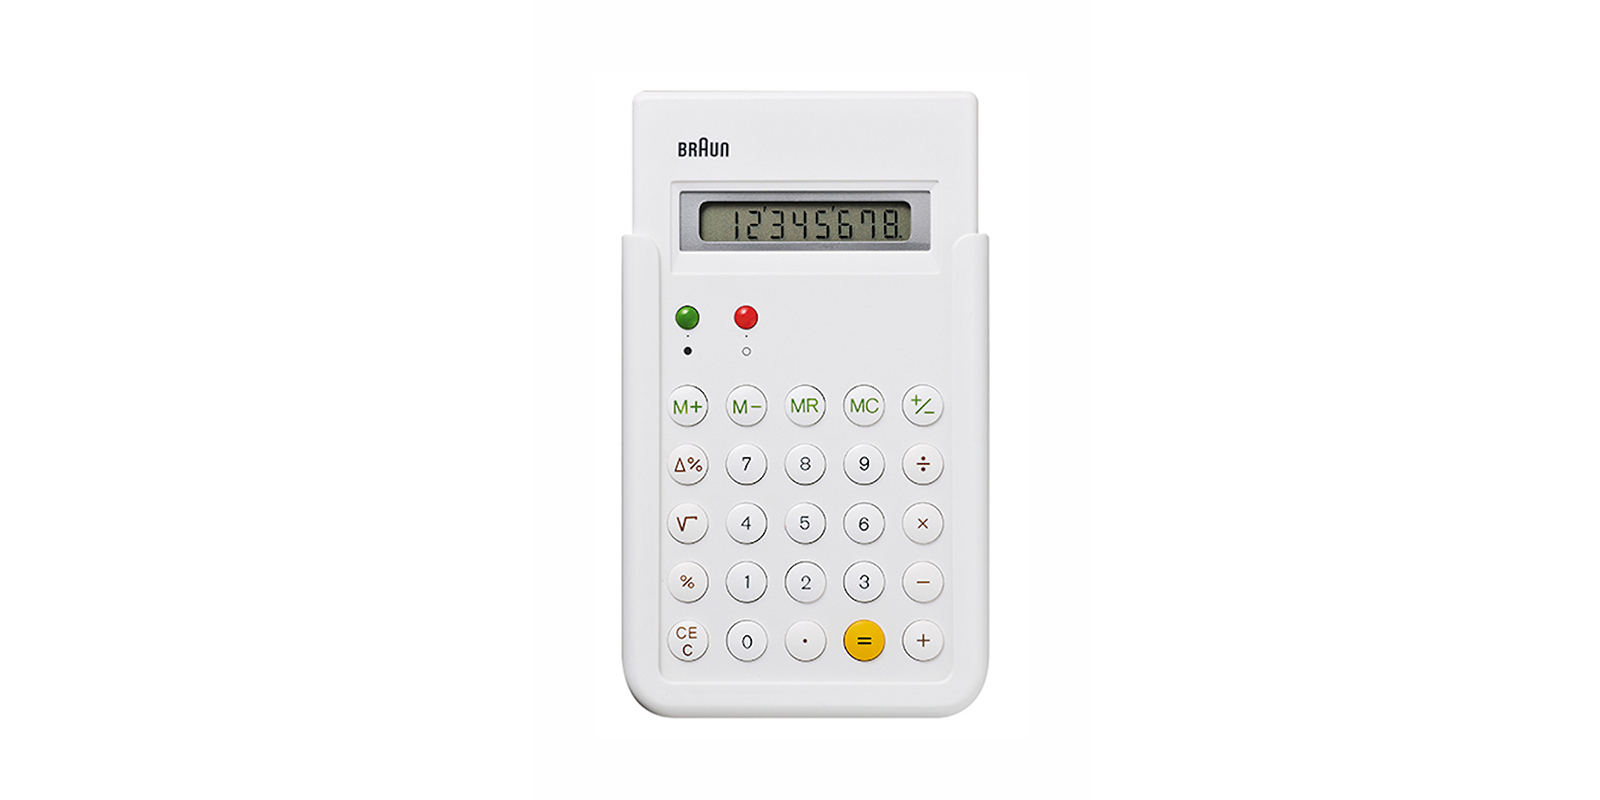 BRAUN Calculator 電卓